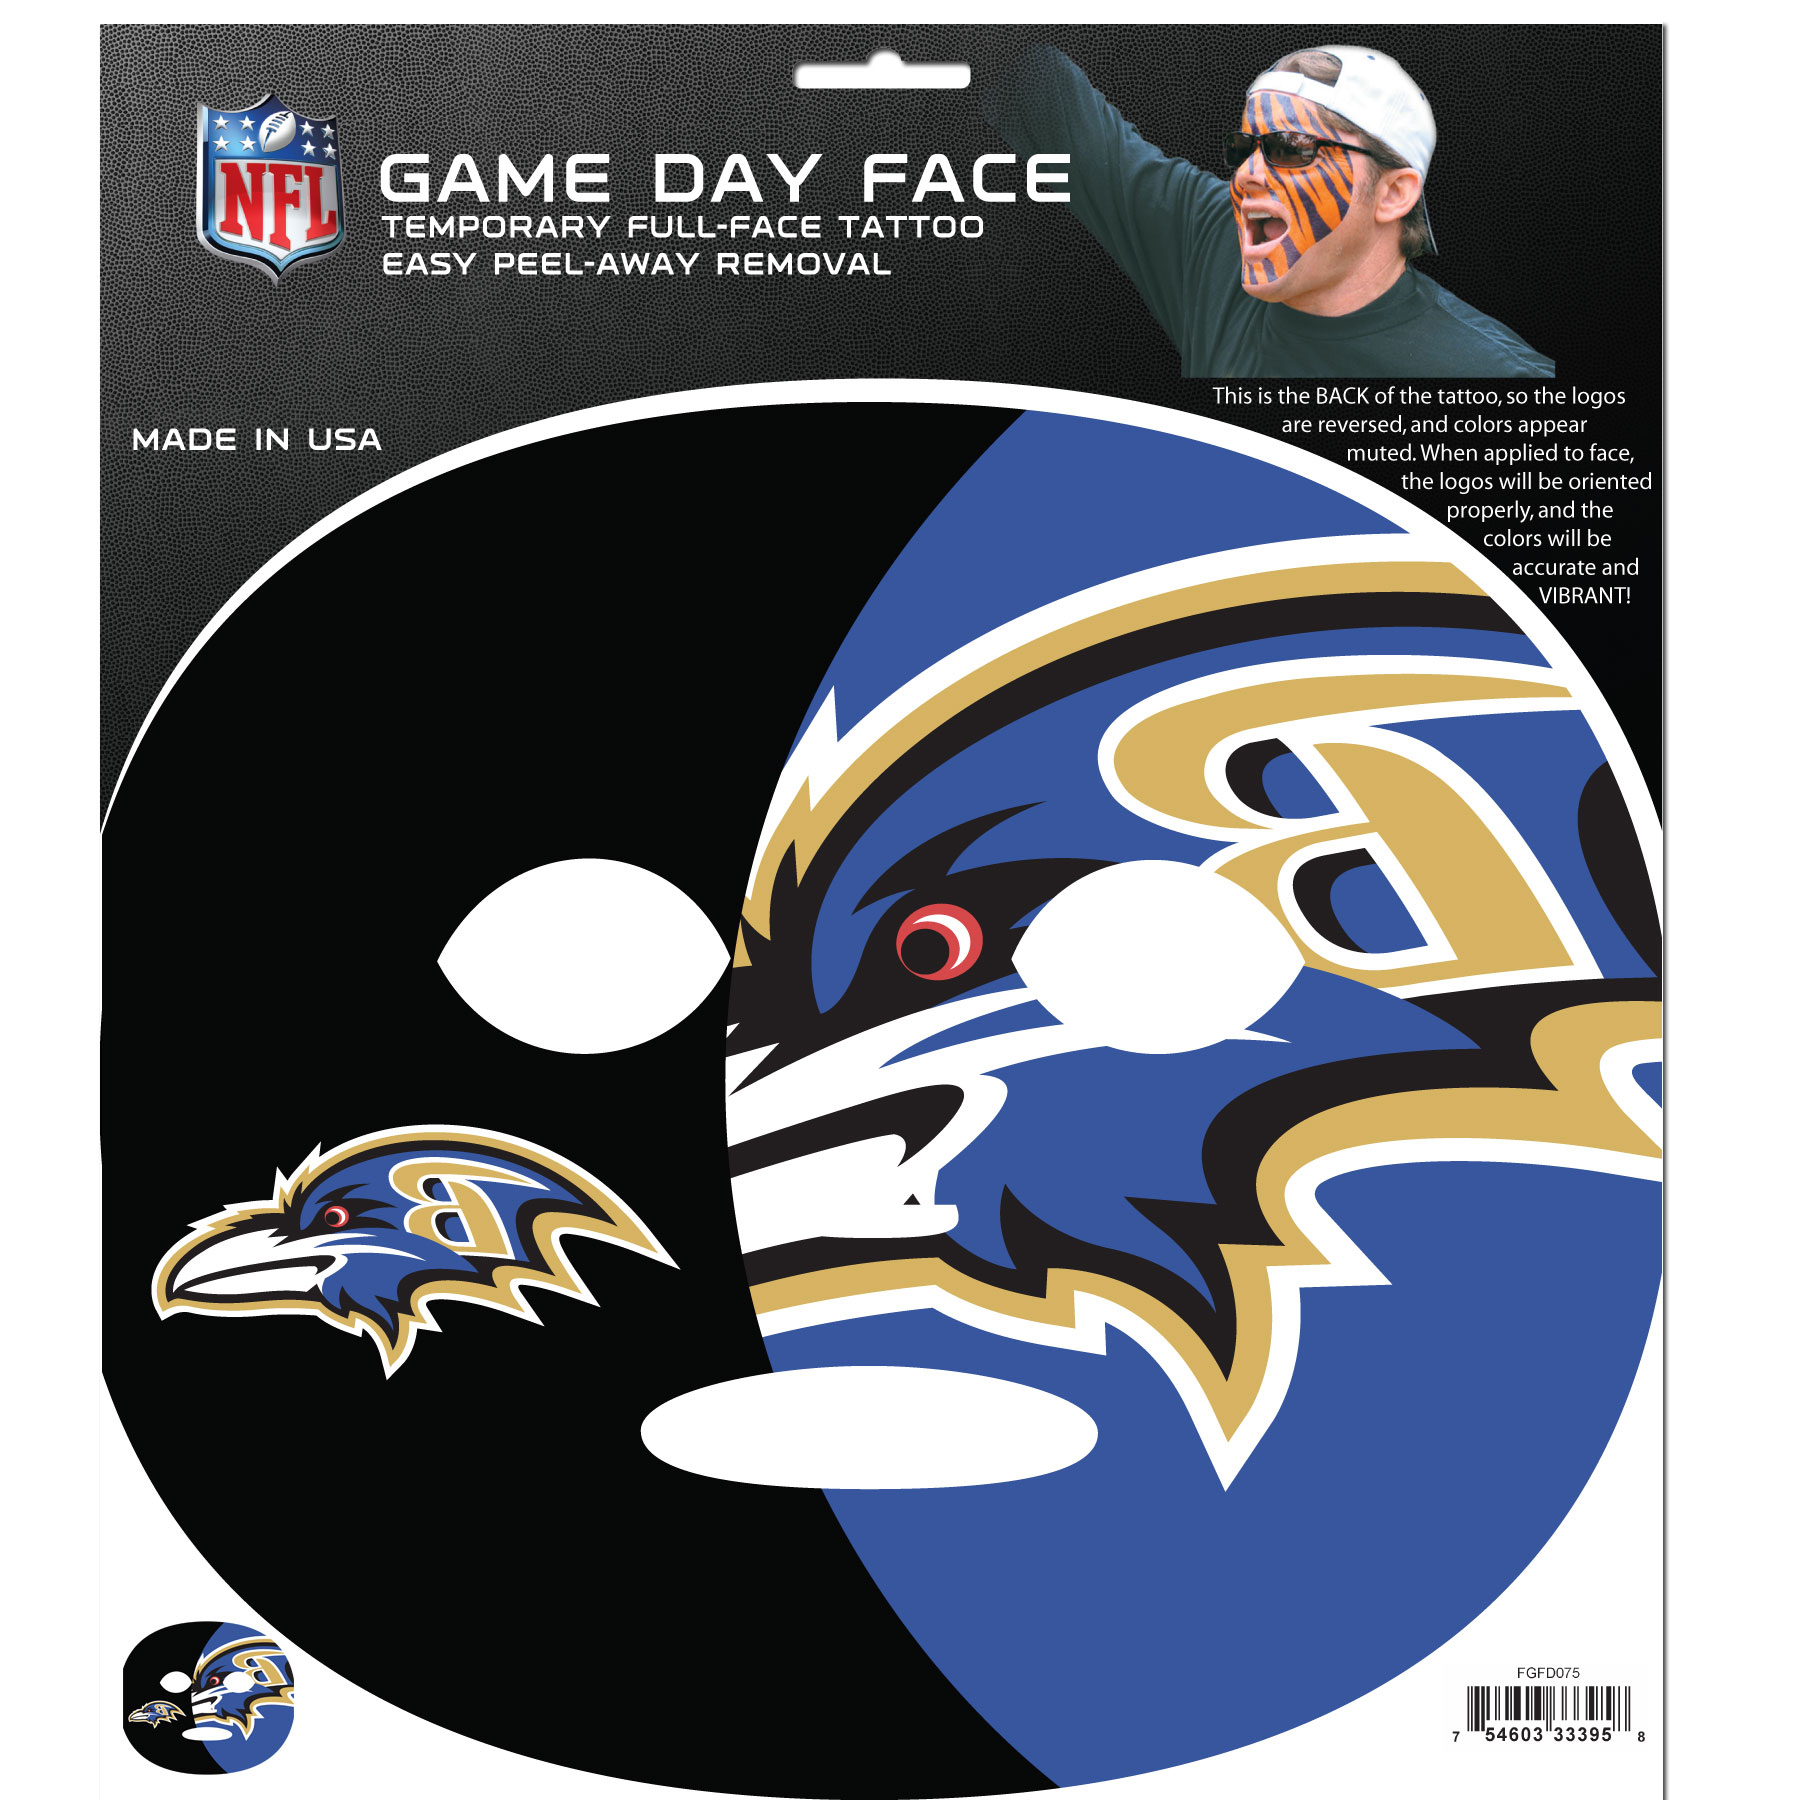 Baltimore Ravens Game Day Face - No better way to show your team pride than by painting your face. Siskiyou's Game Day Face Temporary Tattoo isn't your typical face paint. It is a water based application that doesn't smudge, smear or sweat off while you're wearing it and easily peels off after you're done celebrating your team's big Win! The temporary tattoo is large enough to trim down to fit your face. Our Game Day Face Temporary Tattoo's are fun for fans of all ages. You may have seen our product before, these are the same Temporary Face Tattoos as pitched on ABC's Shark Tank.